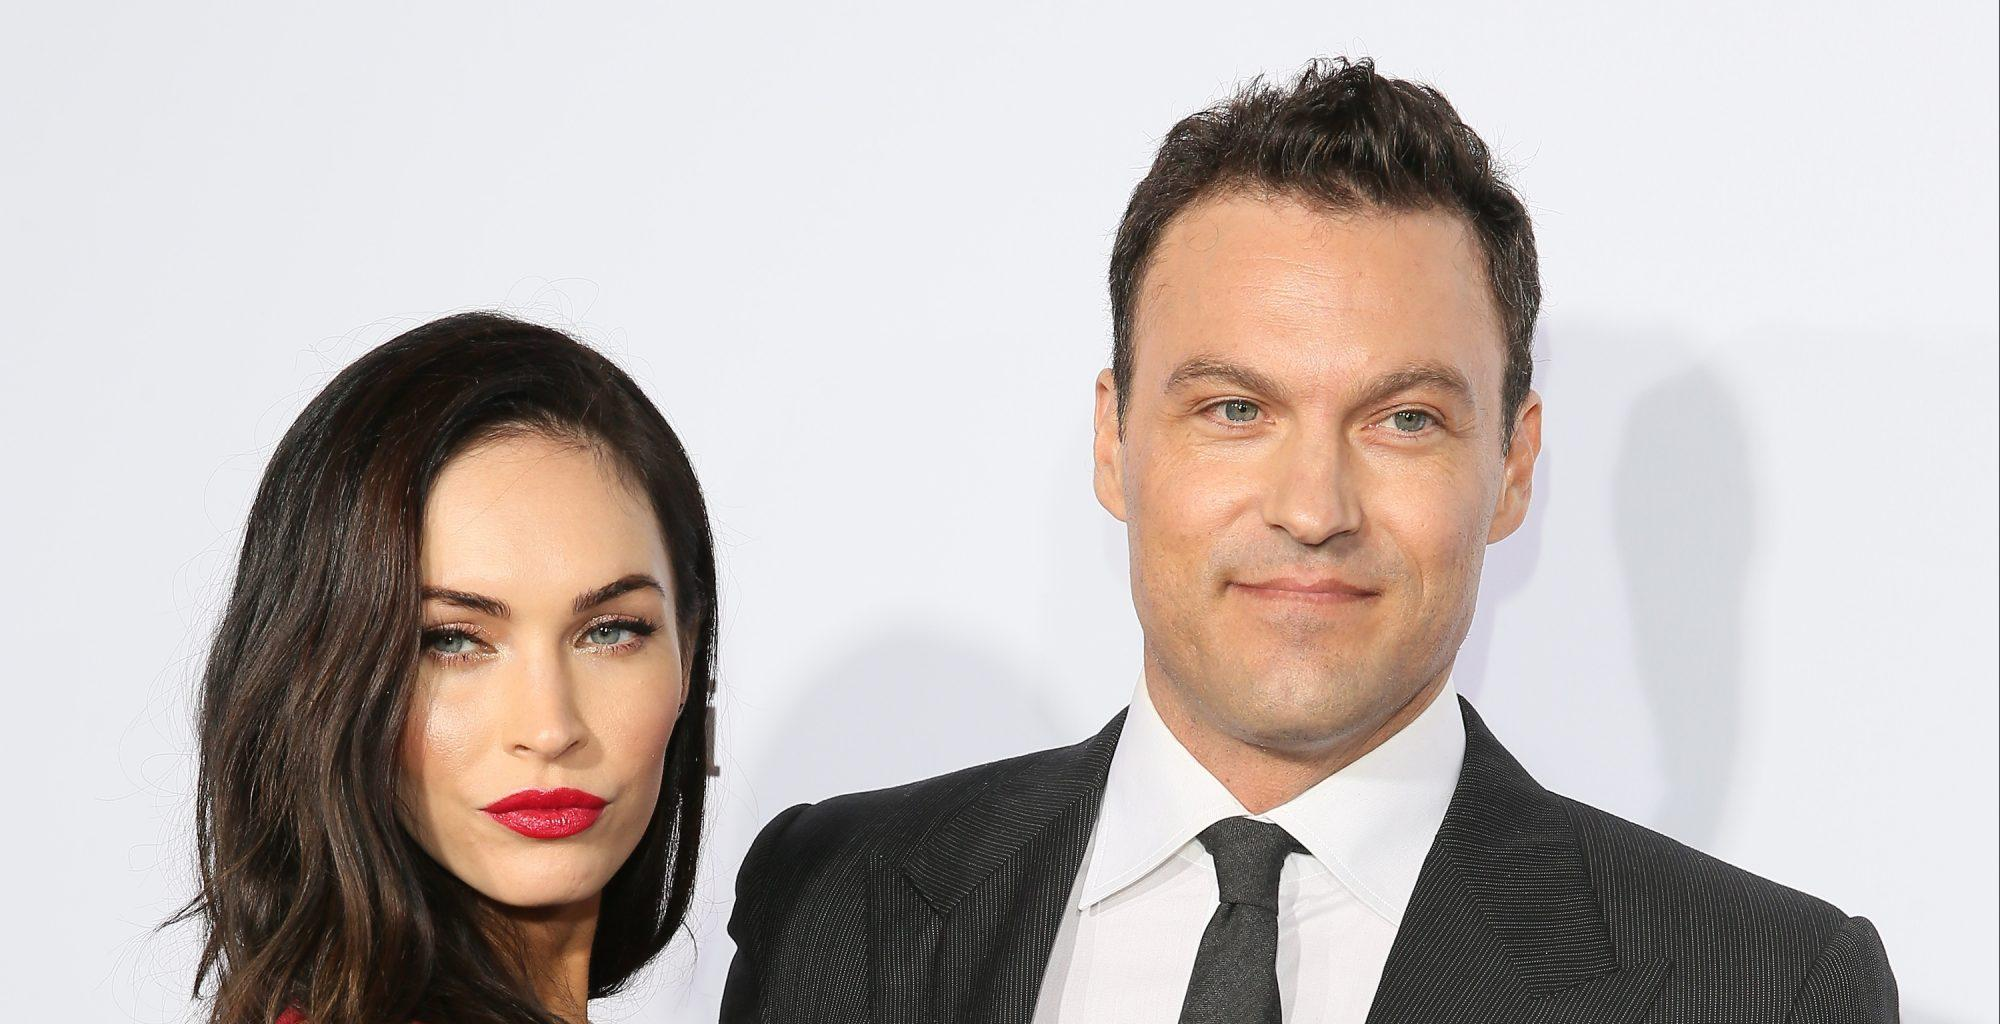 Brian Austin Green Says 'You Never Know' When Asked About Reuniting With Megan Fox!